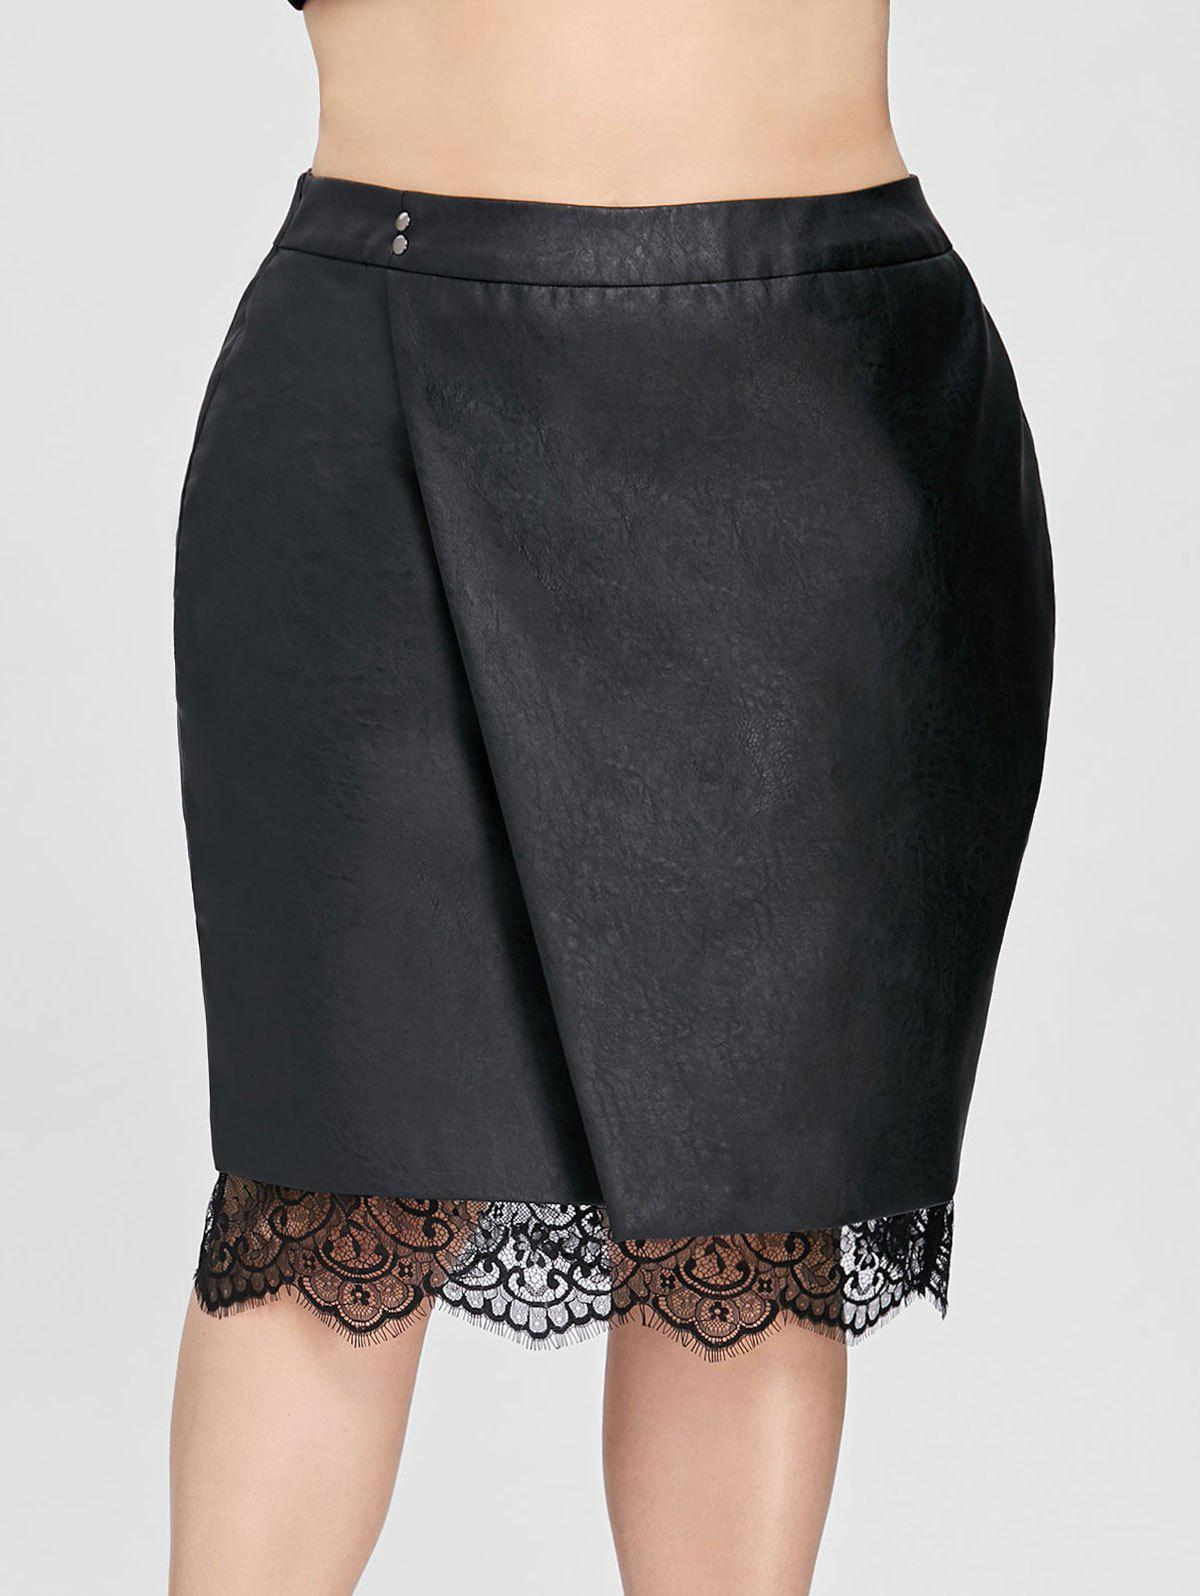 Plus Size Faux Leather Oblique Lace Trim Skirt - BLACK 2XL